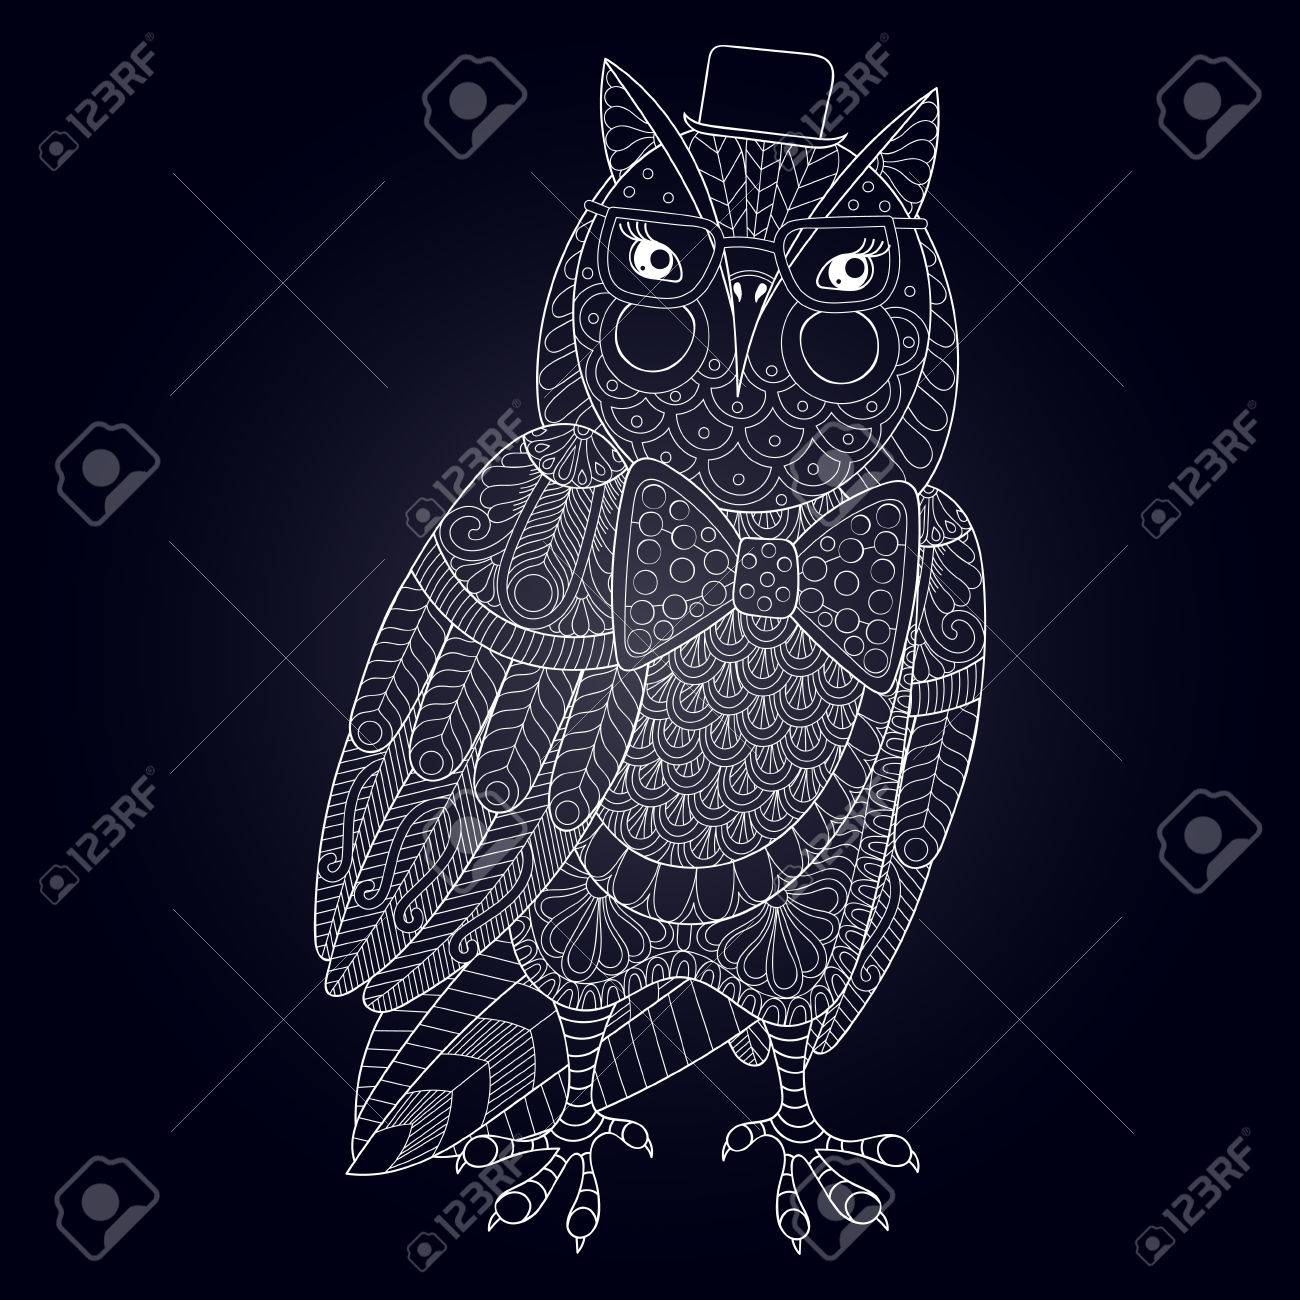 Zentangle Owl Painting For Adult Anti Stress Coloring Page Book